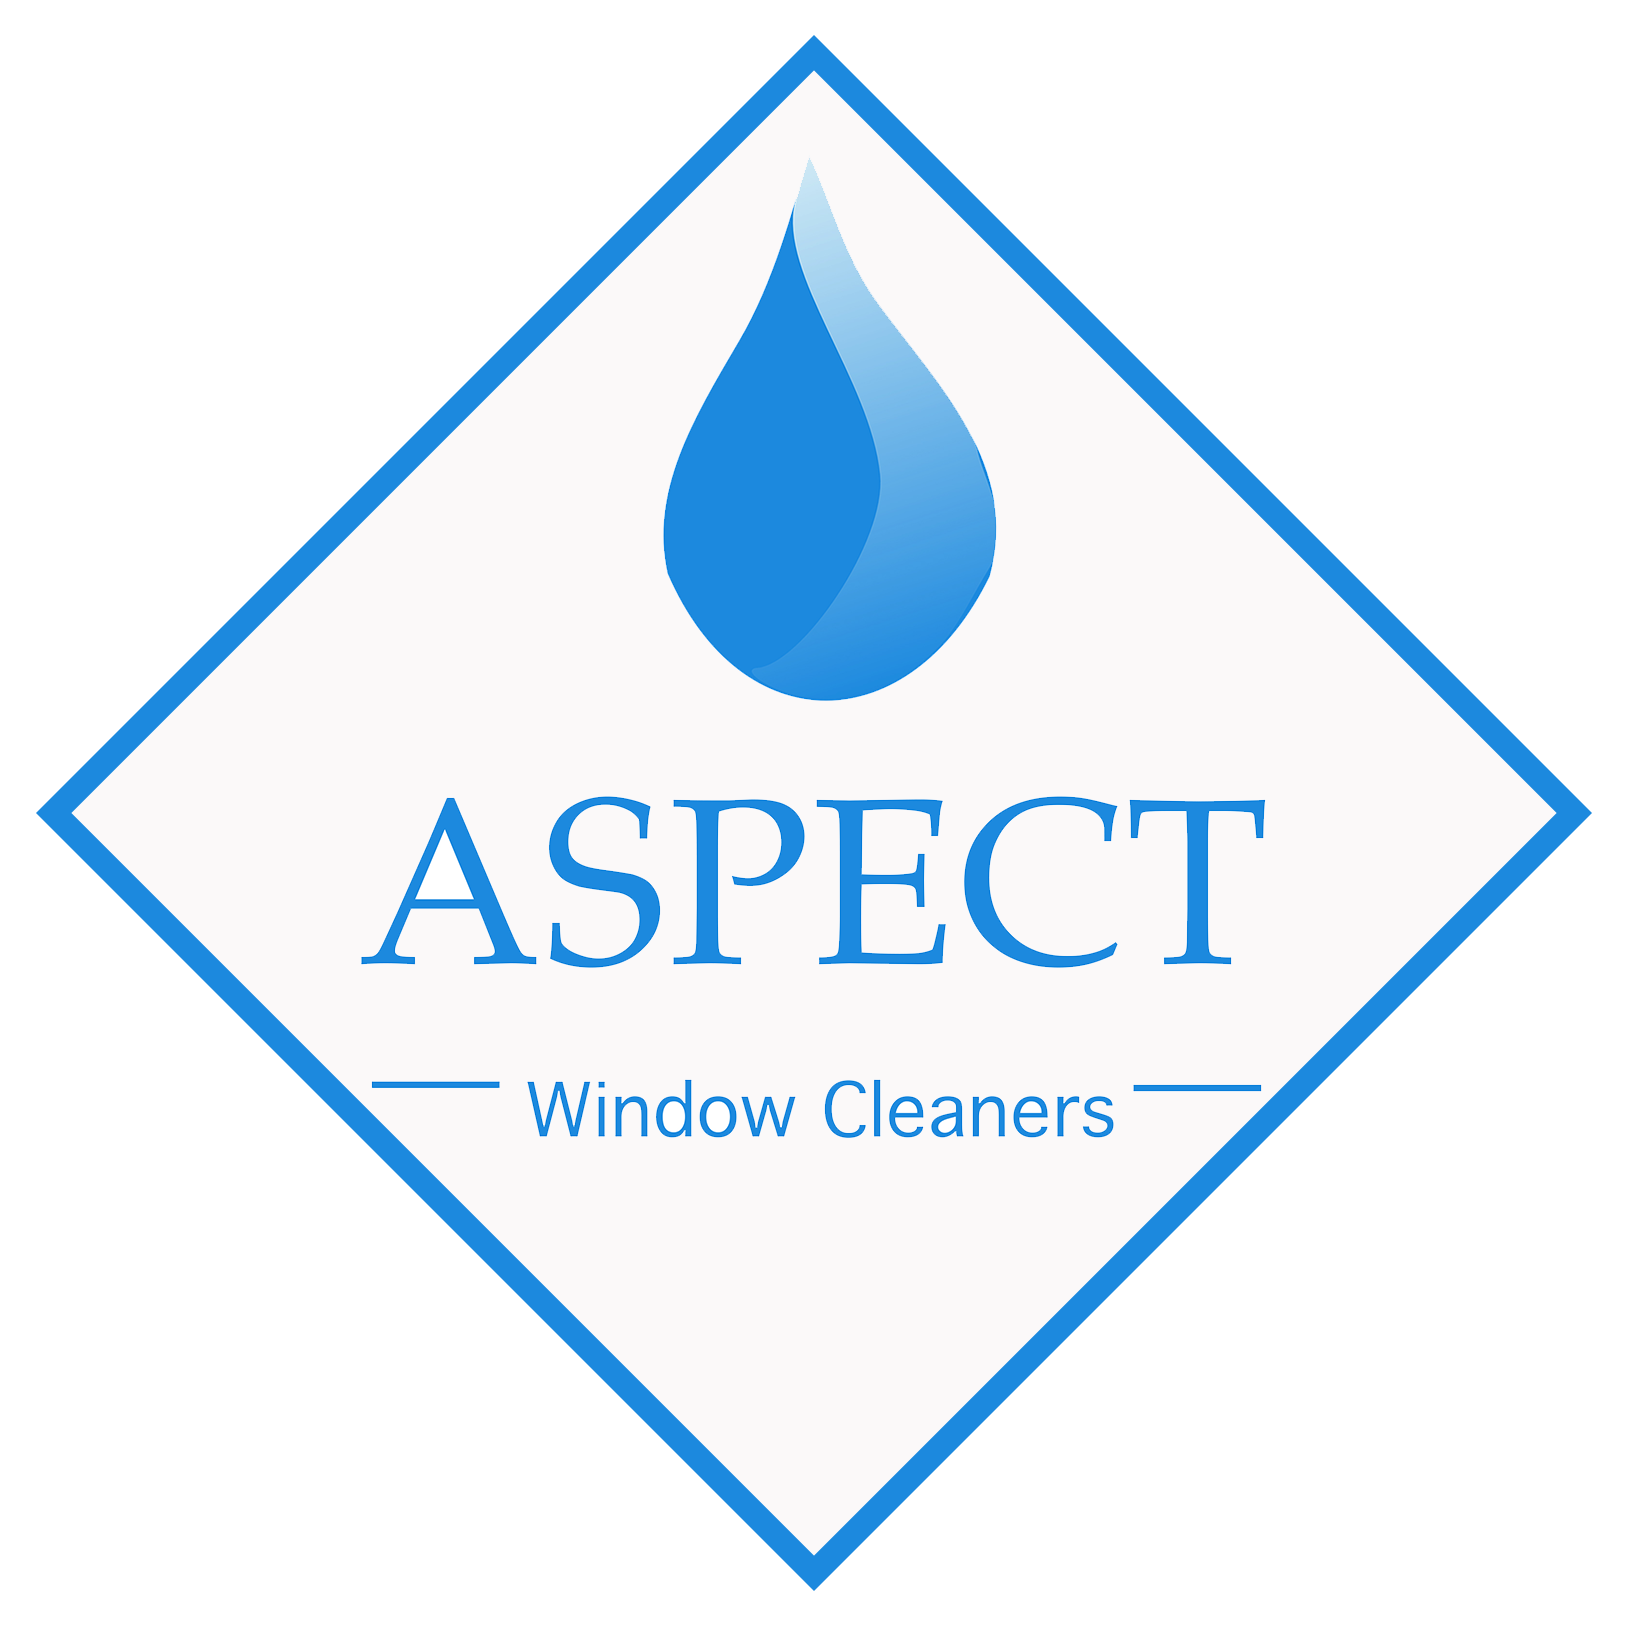 Aspect Window Cleaners Logo